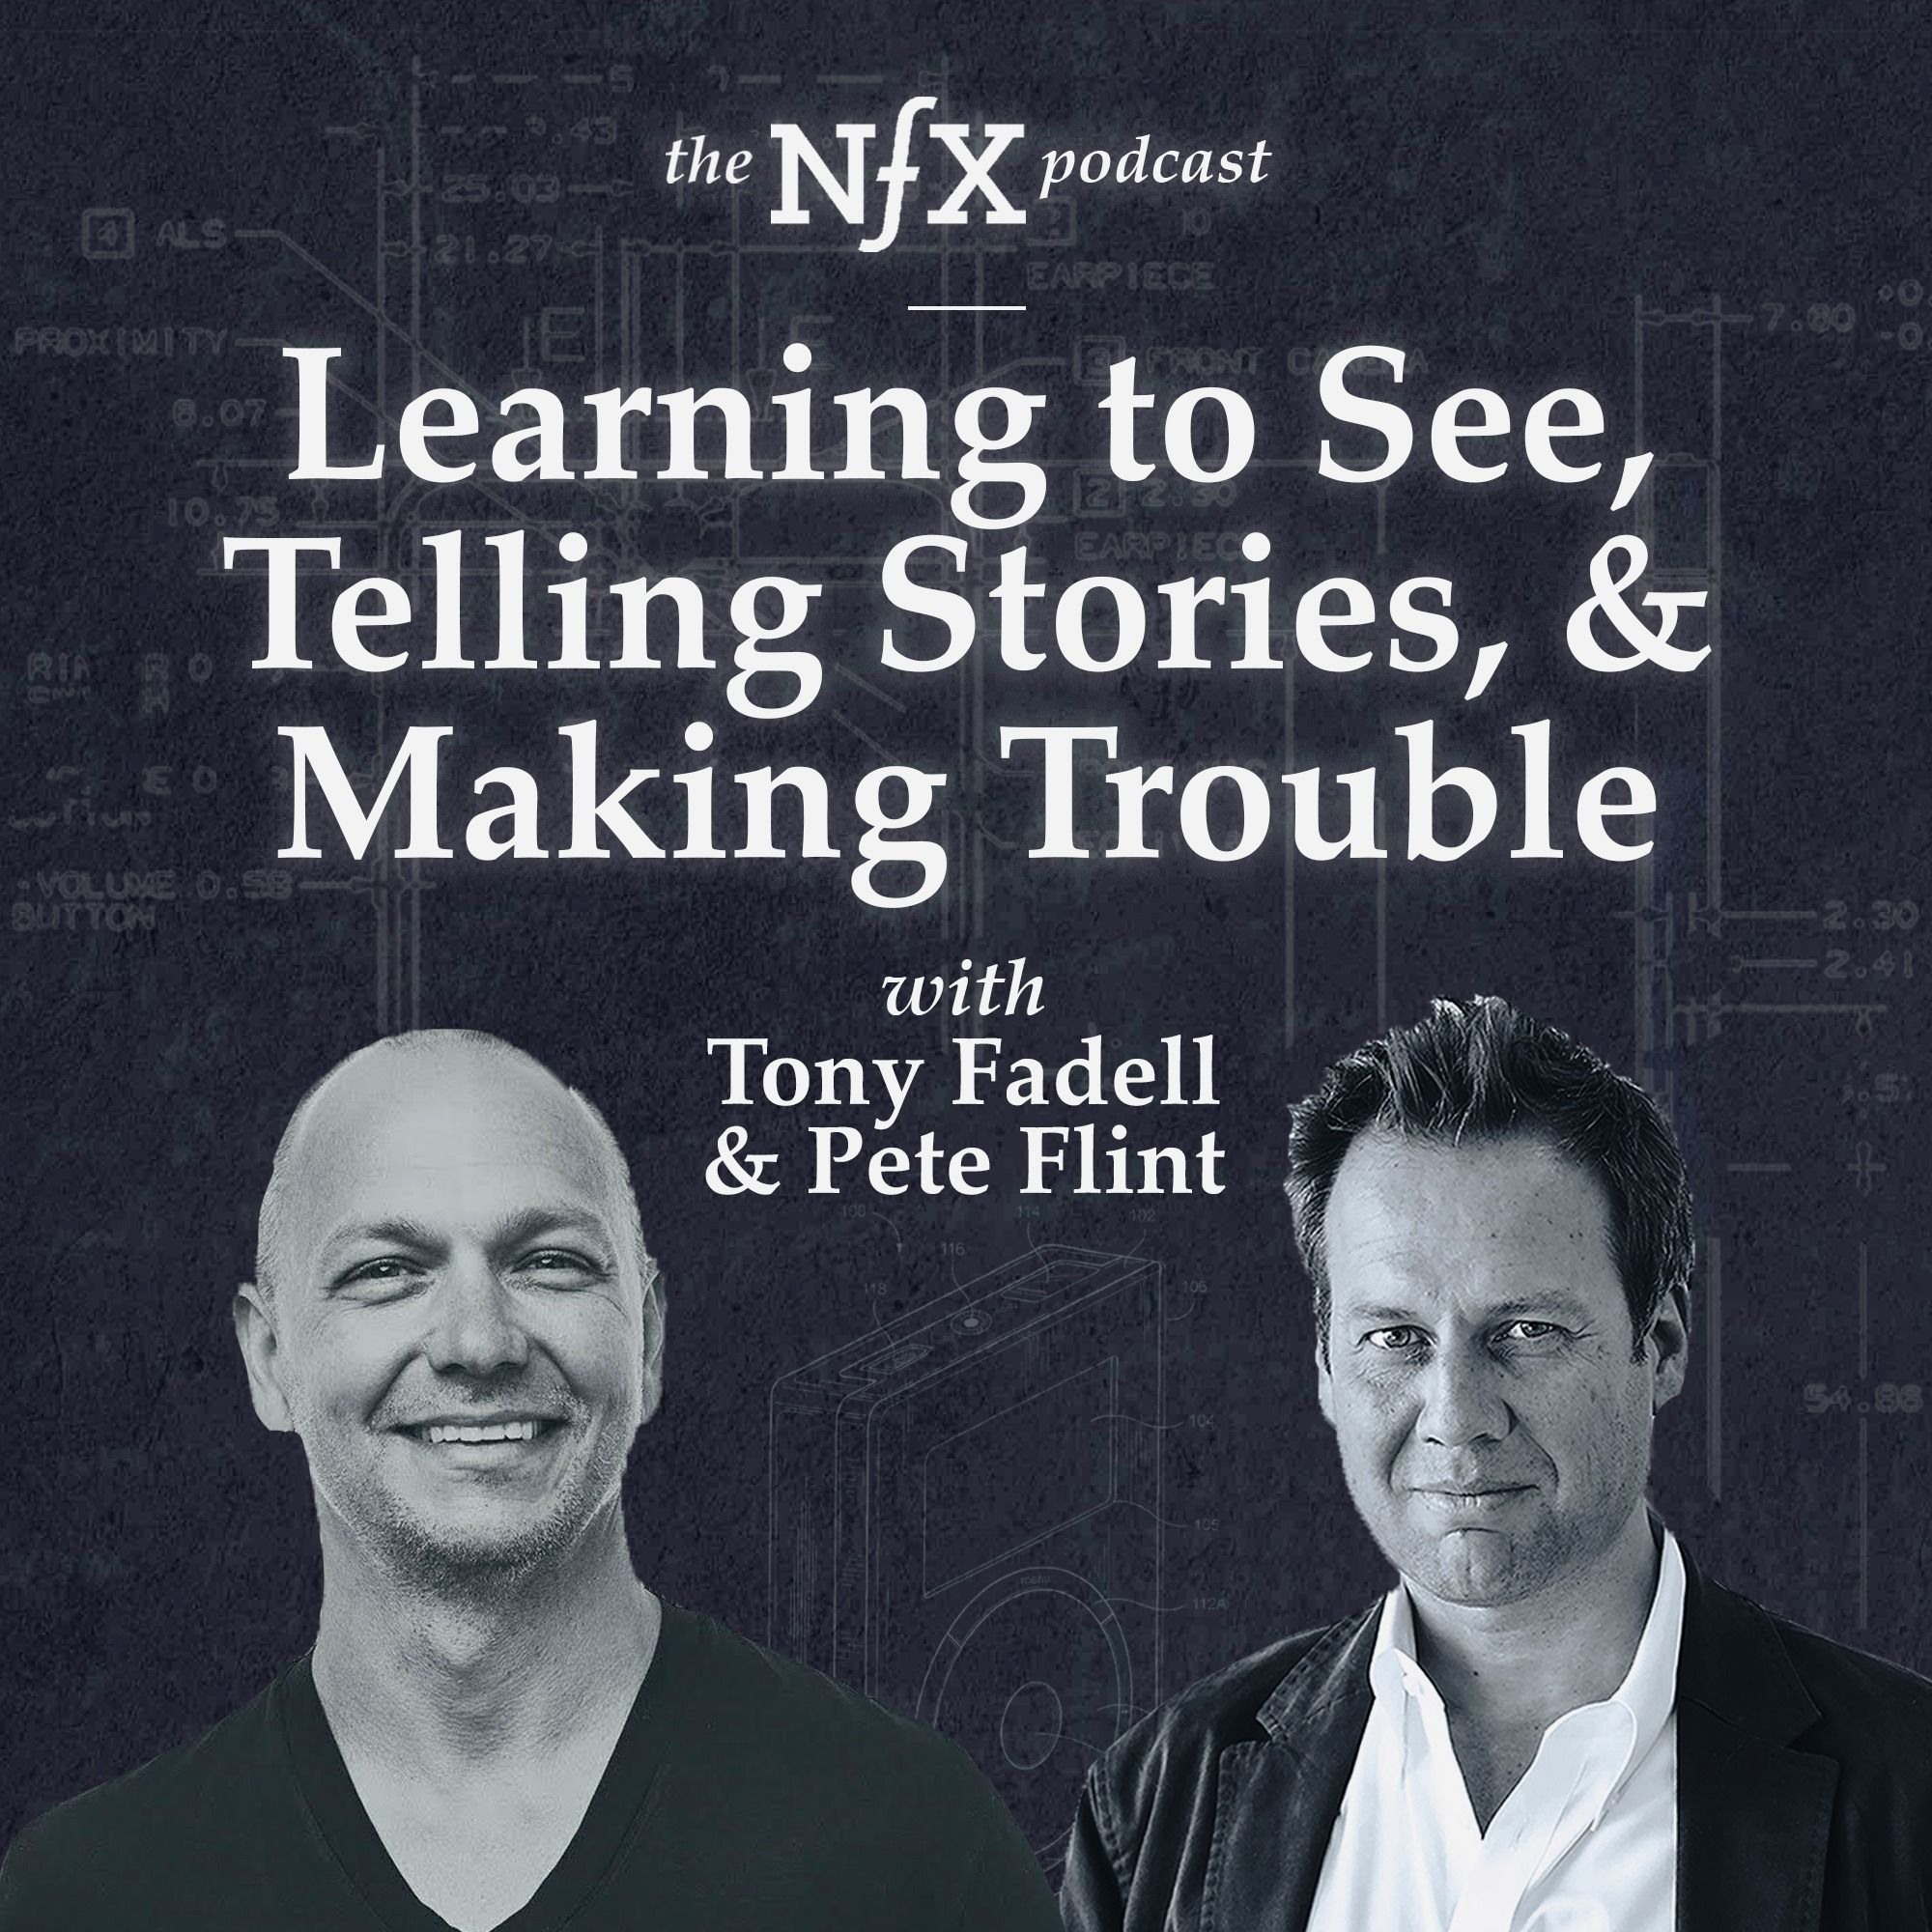 Tony Fadell on Learning To See, Telling Stories, & Being A Troublemaker